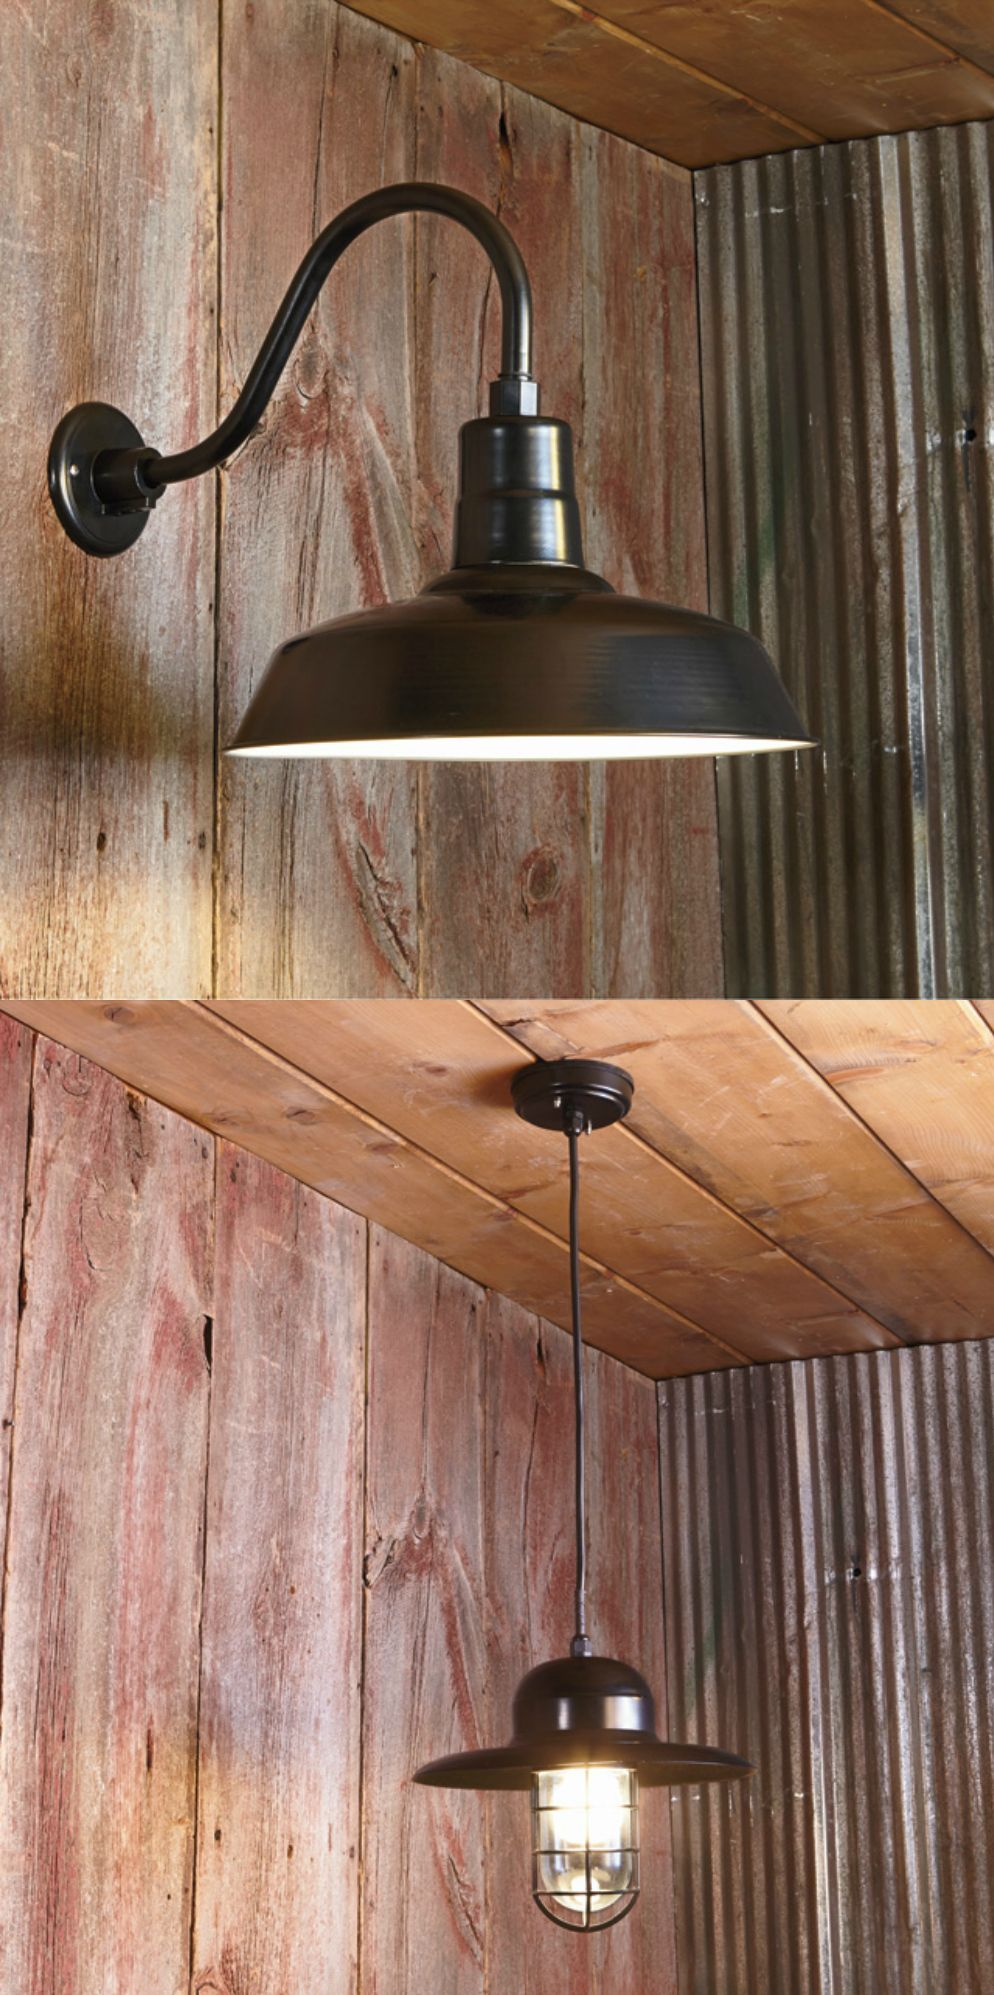 Affordable Barn Lights Add A Comfortable Farmhouse Feel Multiple Mount Options Make The Design Possibilities Endless